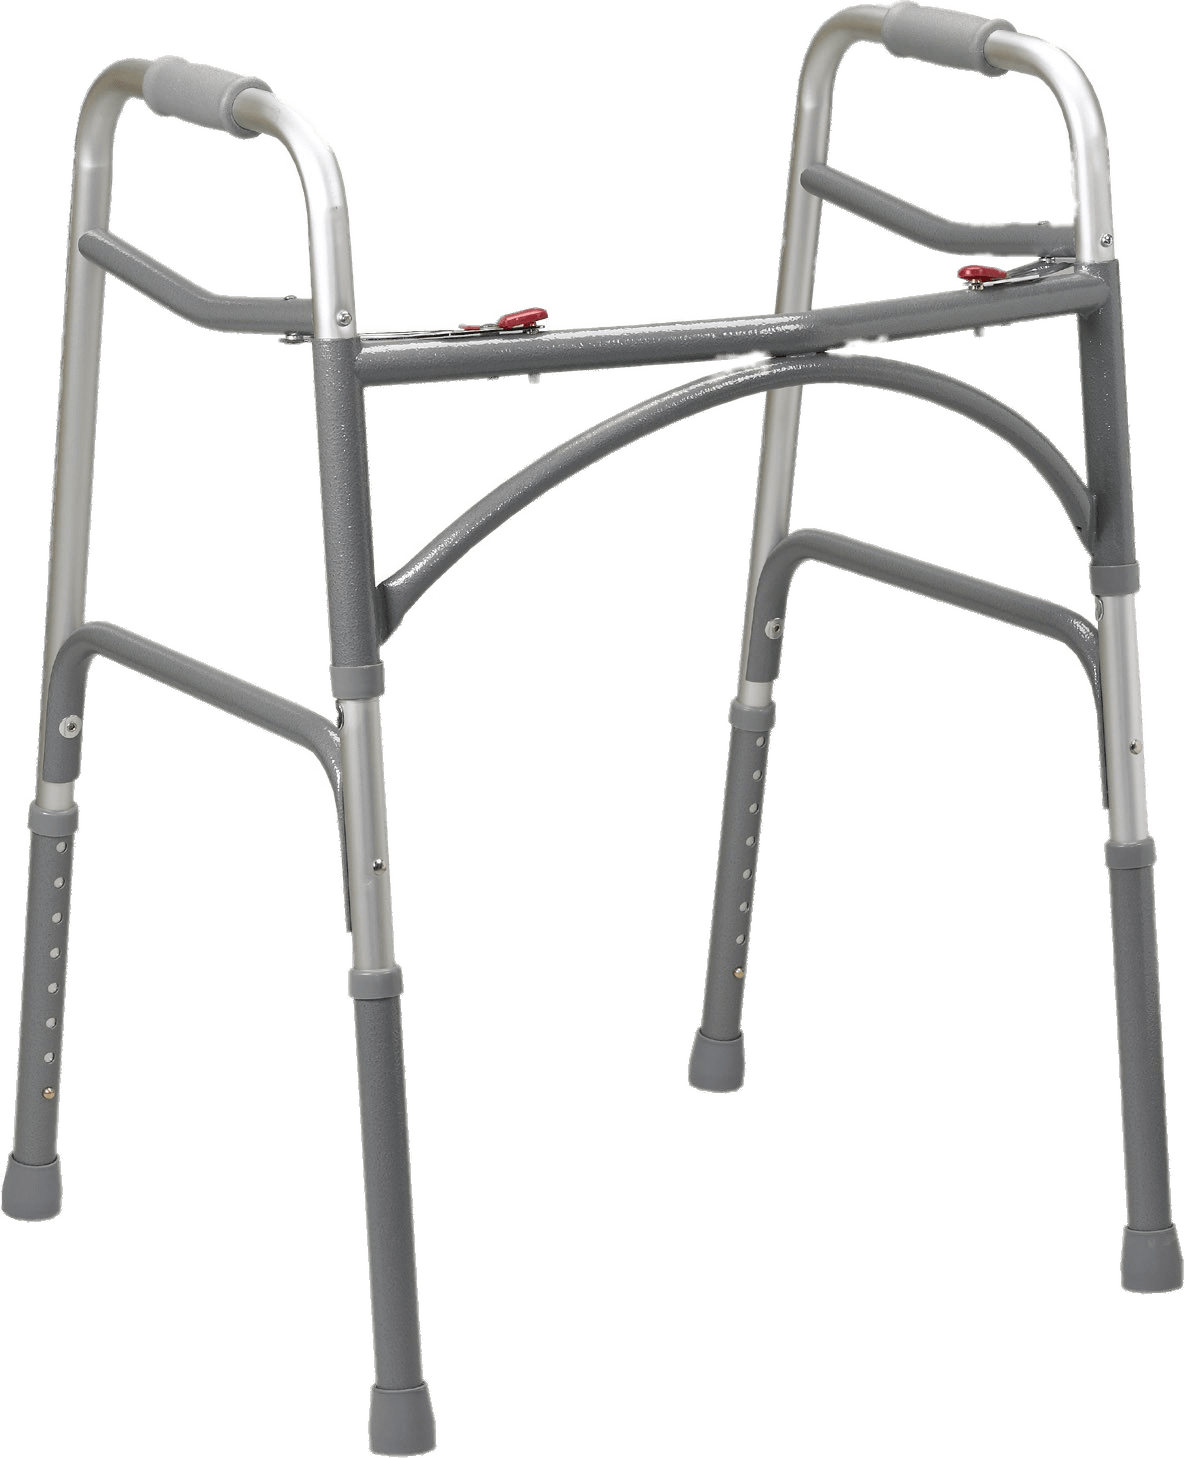 Transparent walker clipart jpg freeuse library Heavy Duty Bariatric Walker transparent PNG - StickPNG jpg freeuse library